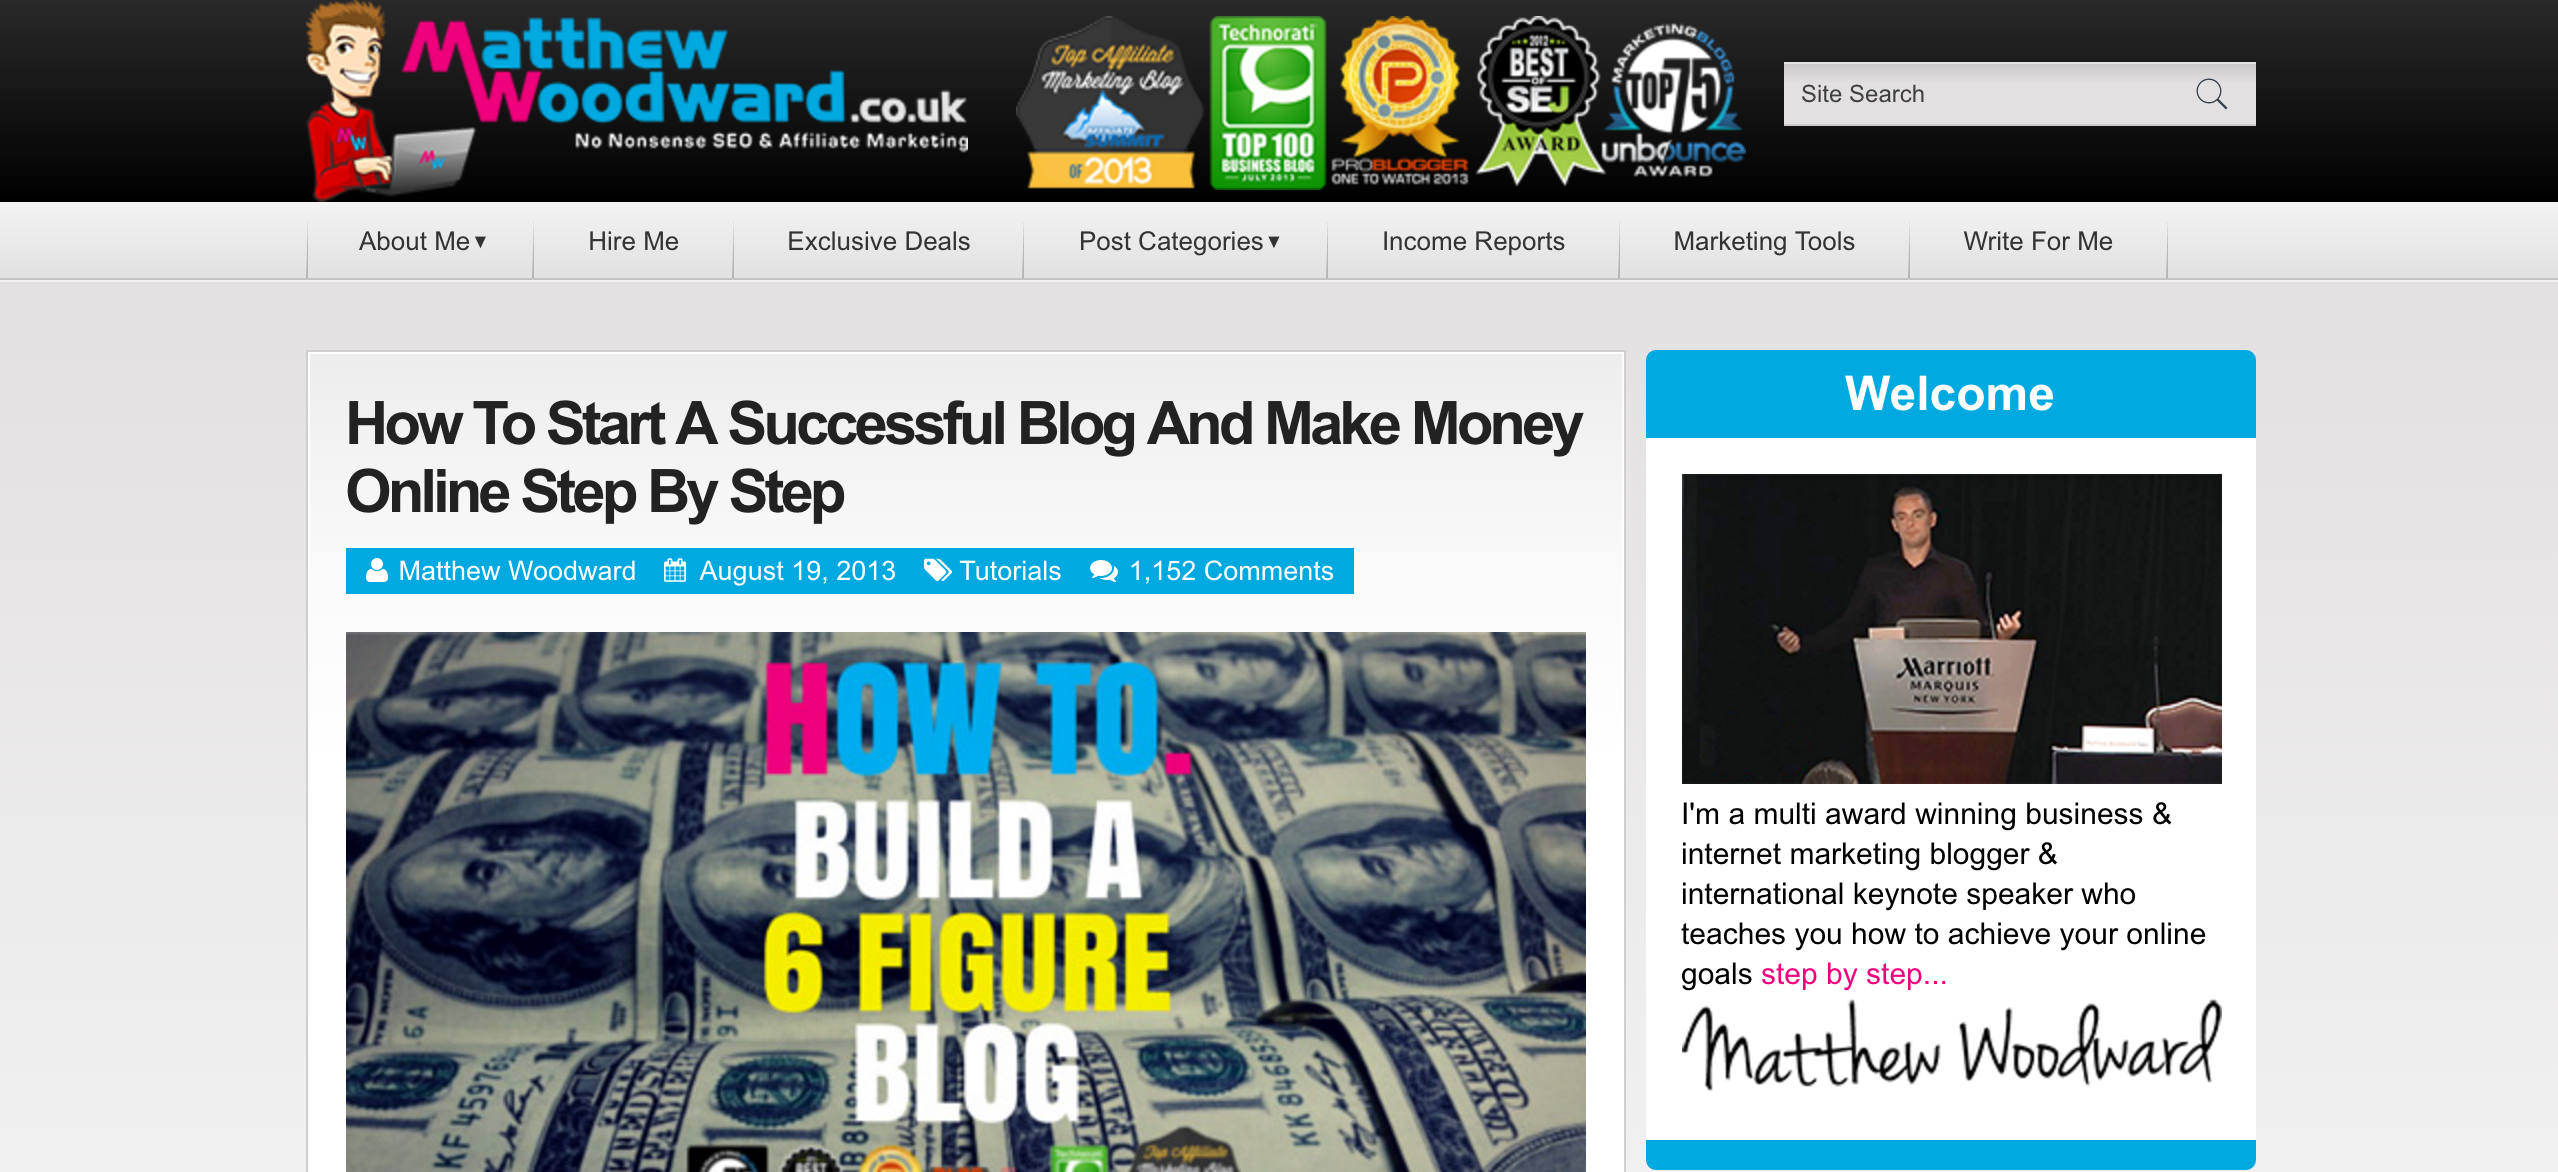 Matthew Woodward Affiliate Marketing and SEO Blog